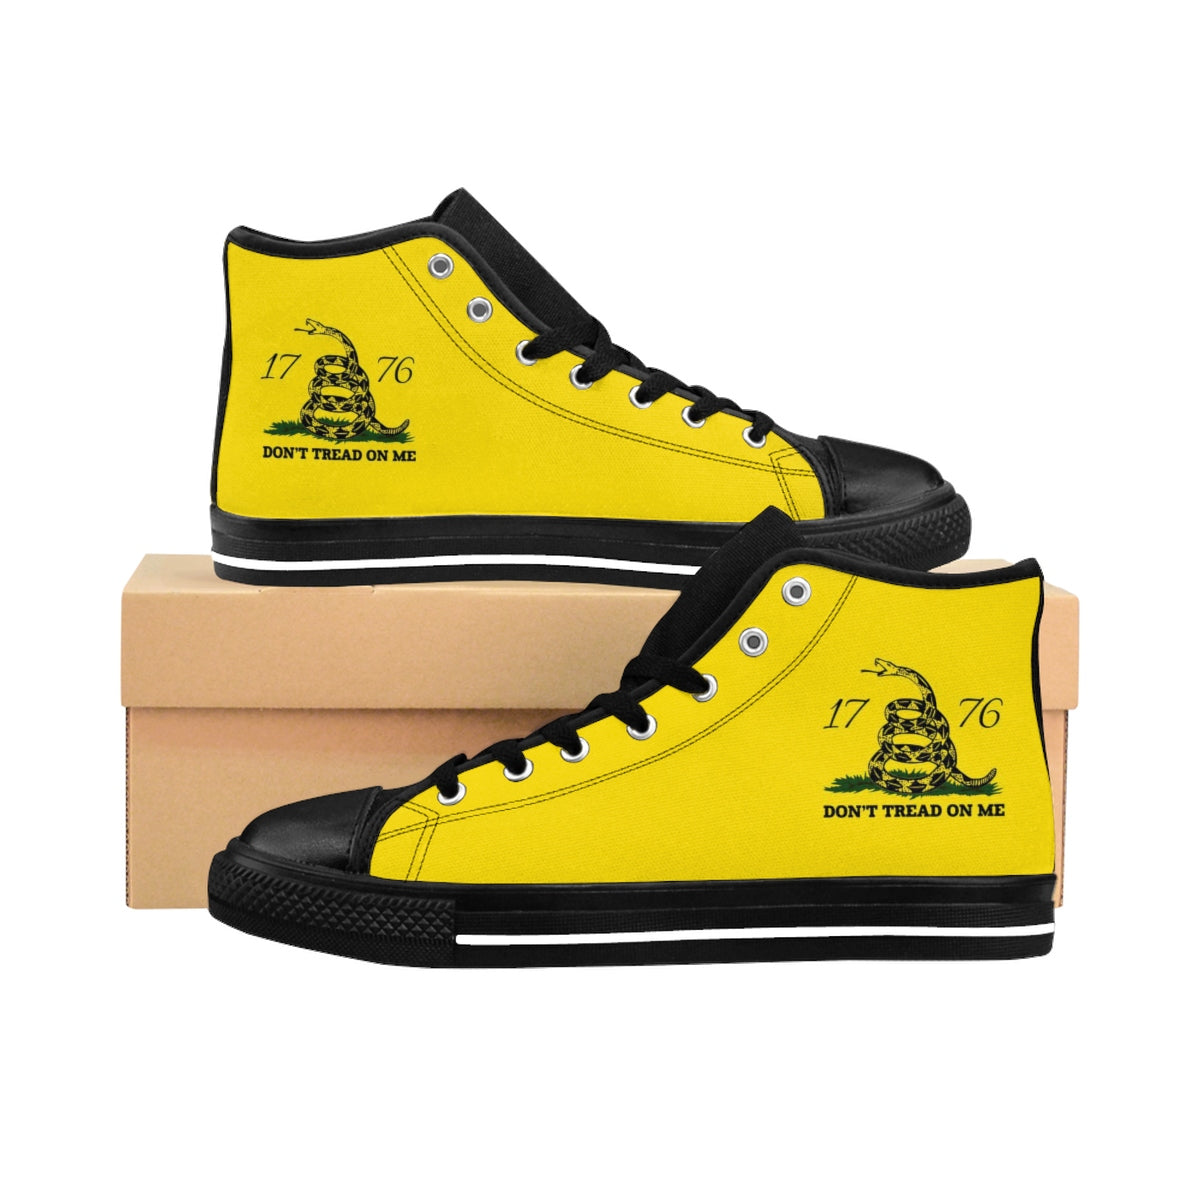 Don't Tread on Me Men's High-top Sneakers